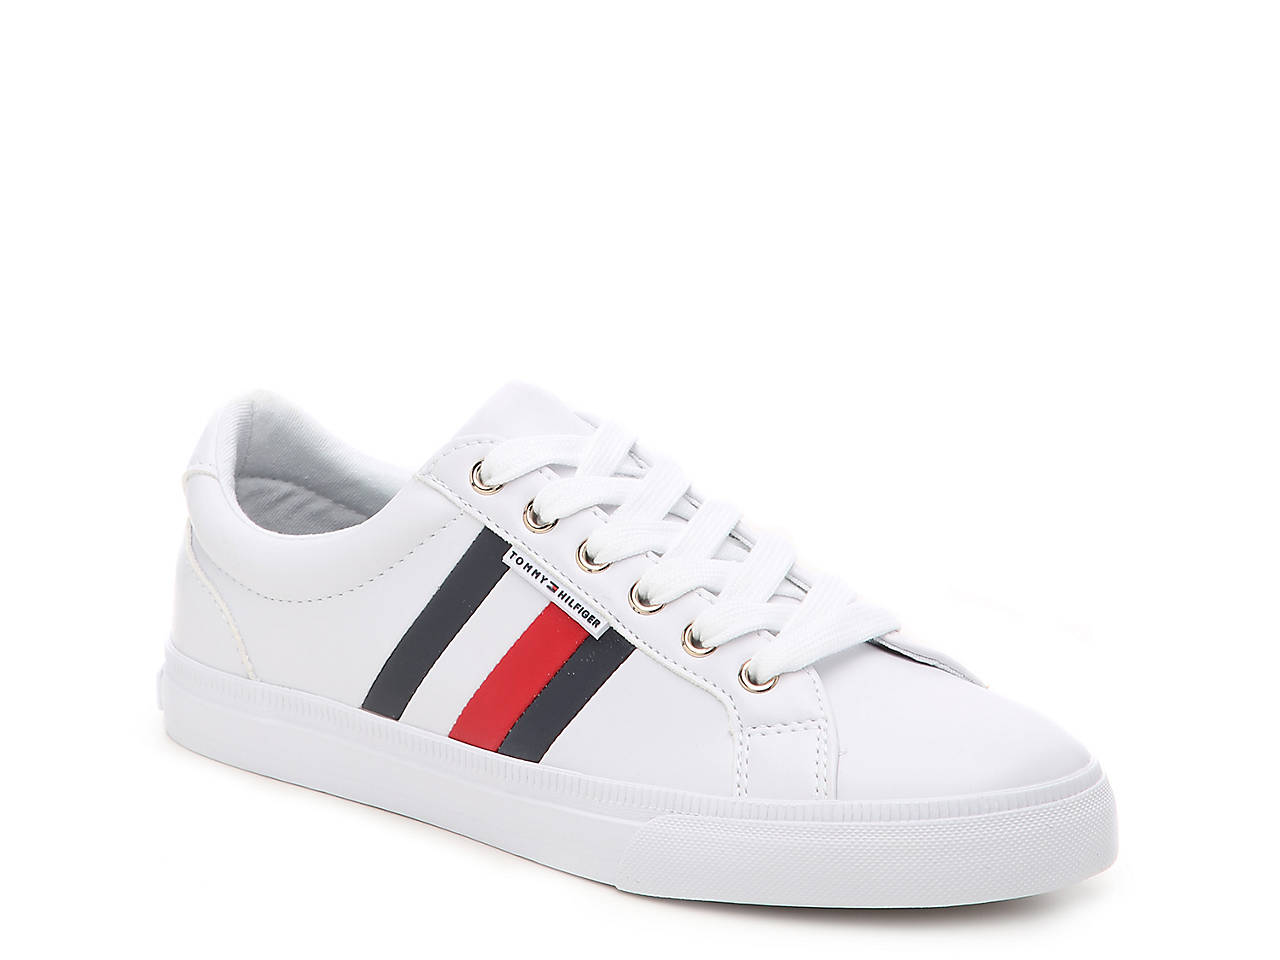 922d9151733d4f Tommy Hilfiger Lightz Sneaker Women s Shoes